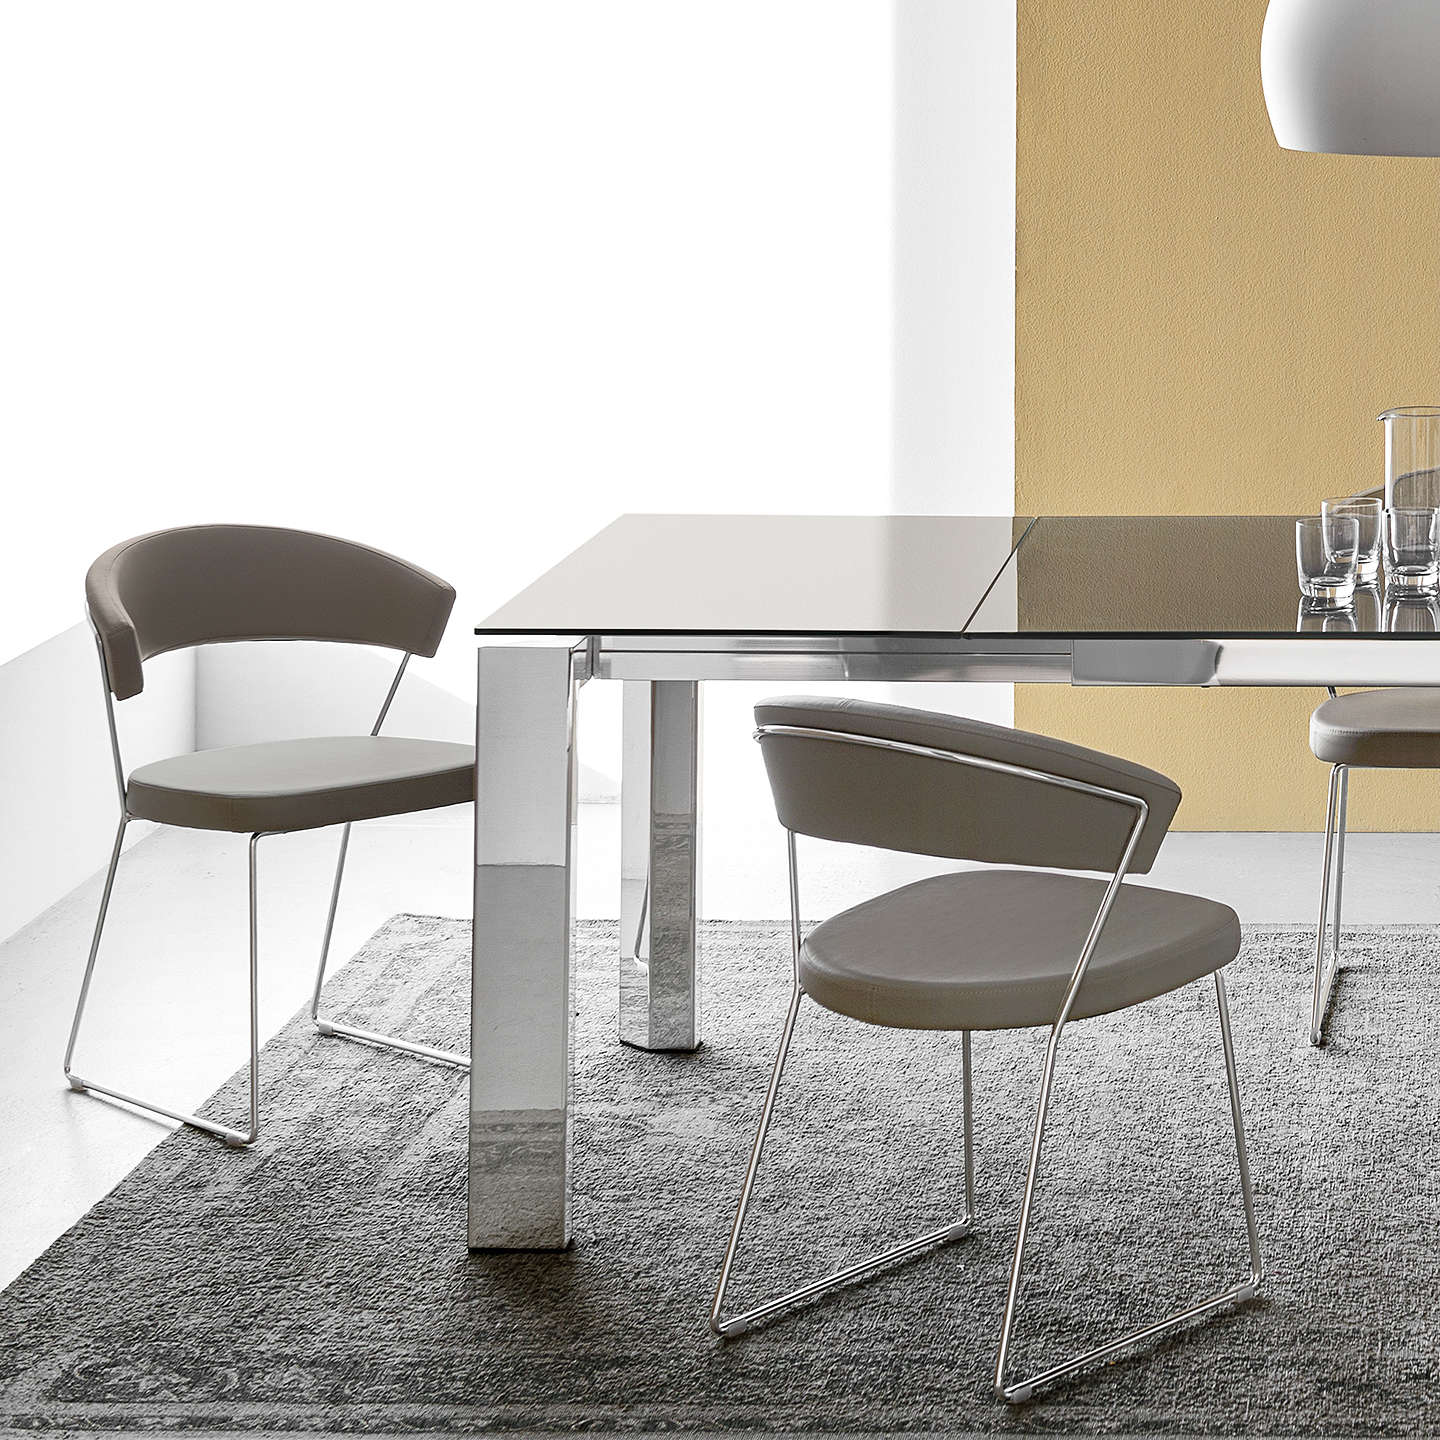 Connubia by calligaris new york dining chair at john lewis for Calligaris new york